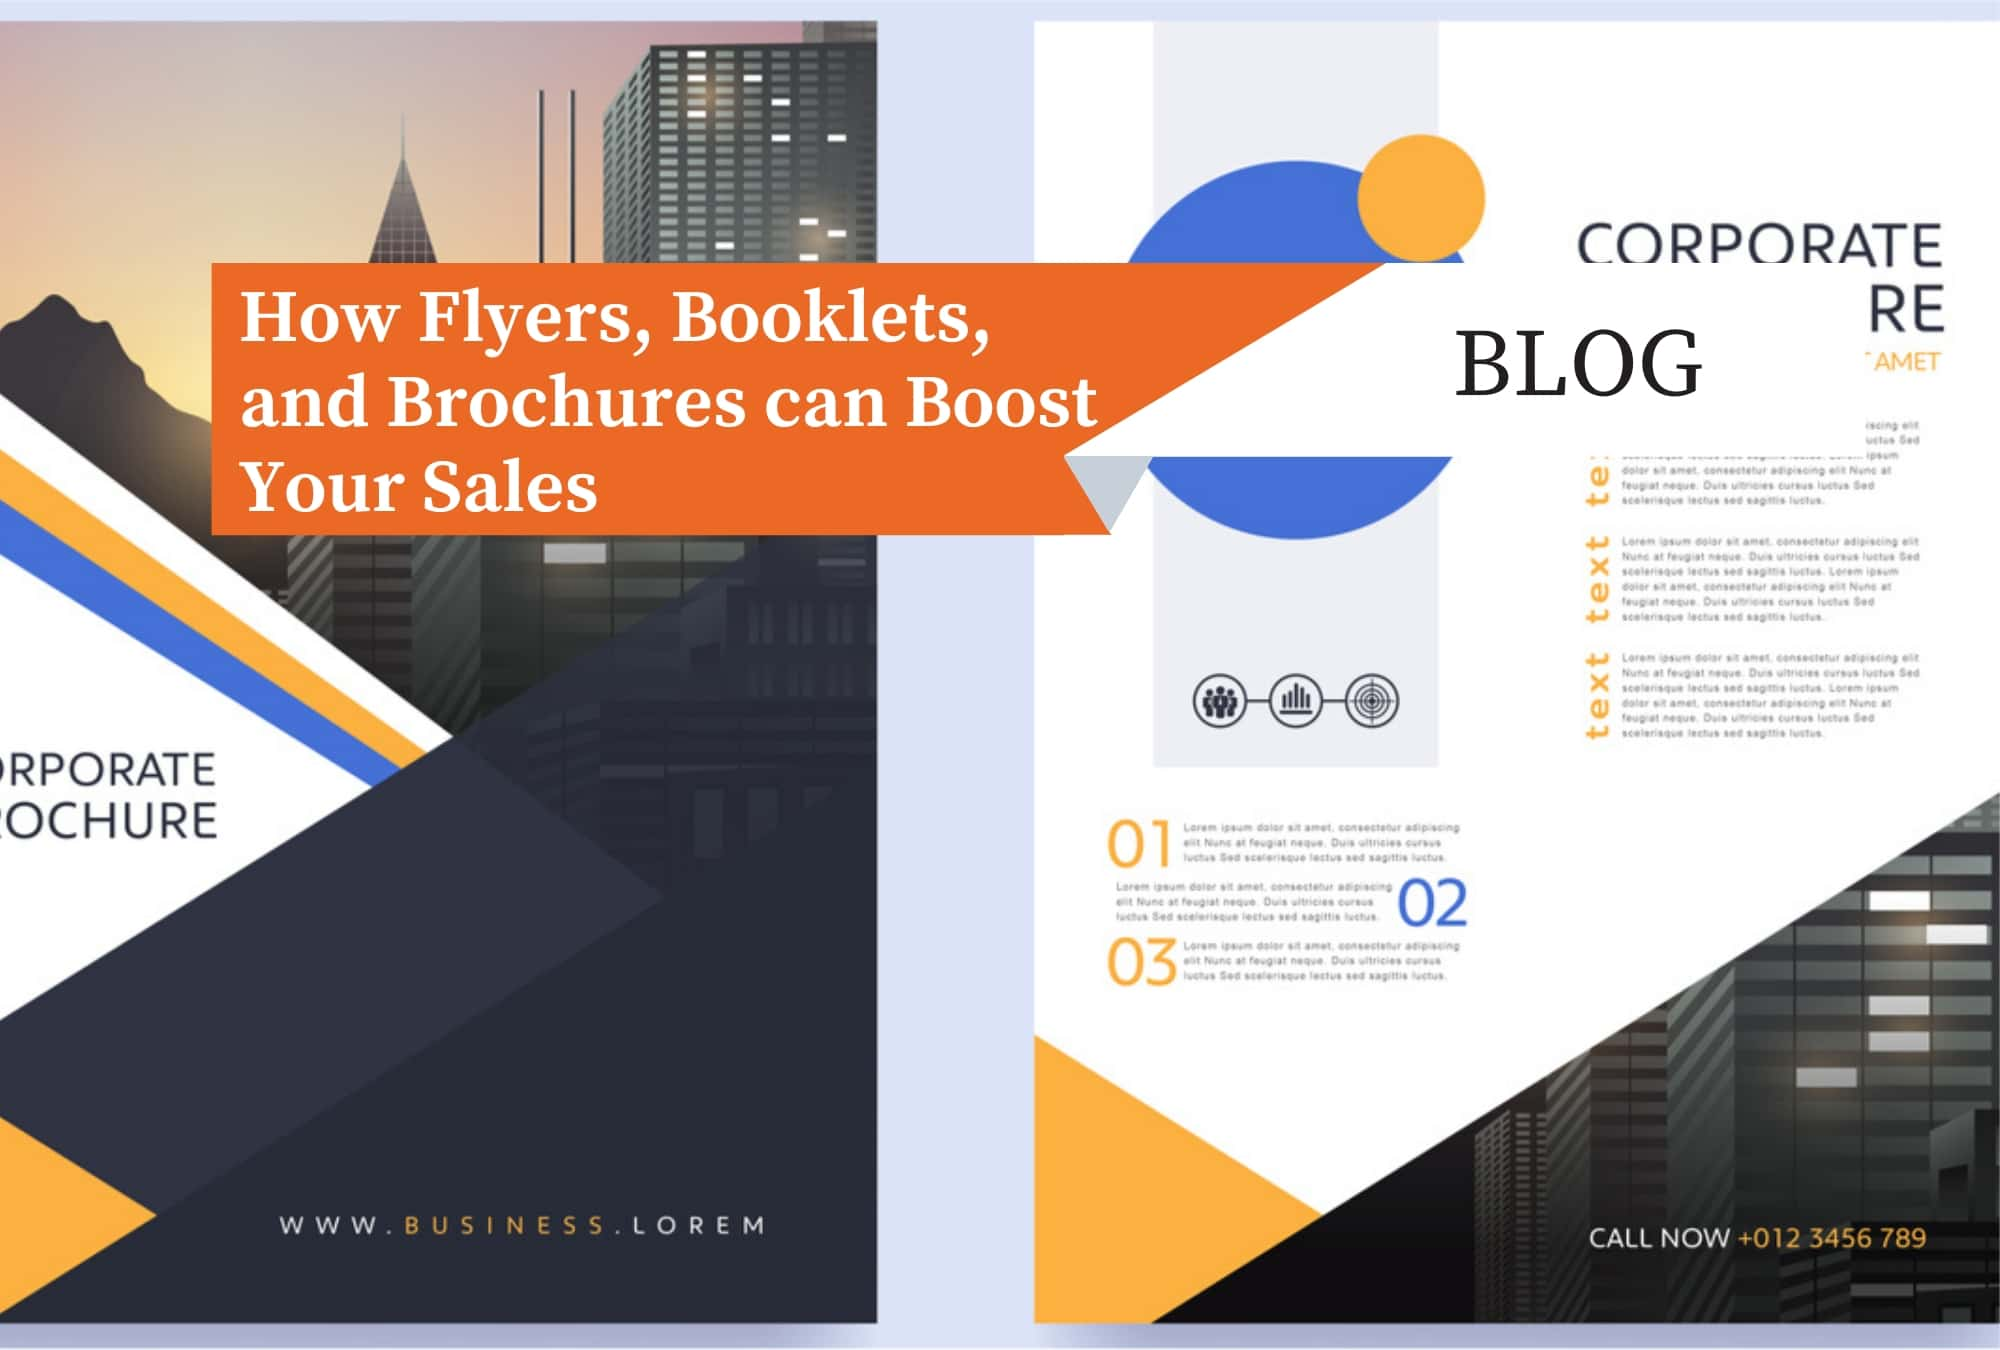 How Flyers, Booklets, and Brochures Can Boost Your Sales